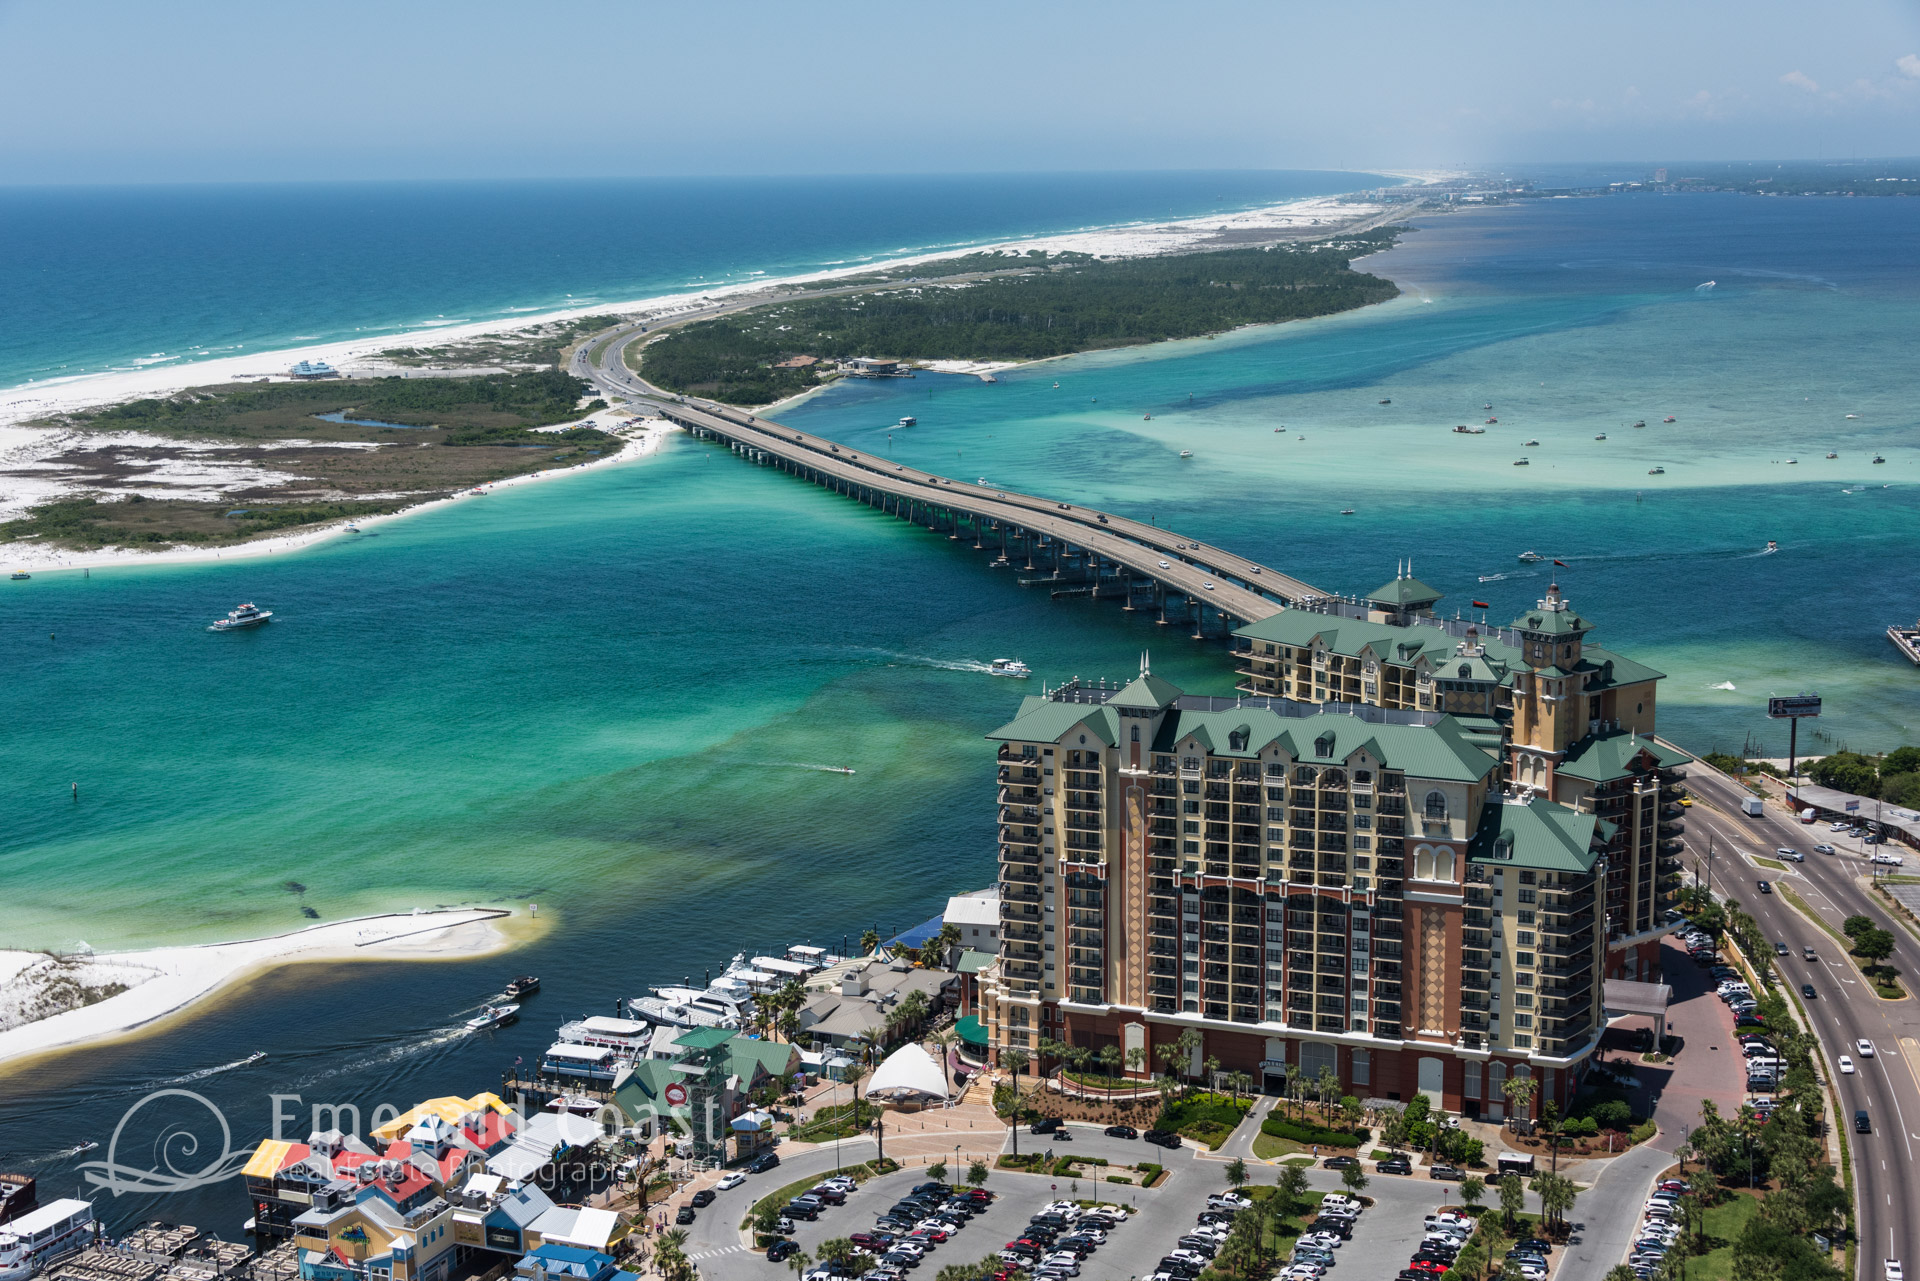 Aerial photo of the Emeral Grandes and the Destin Pass to the Gulf of Mexico